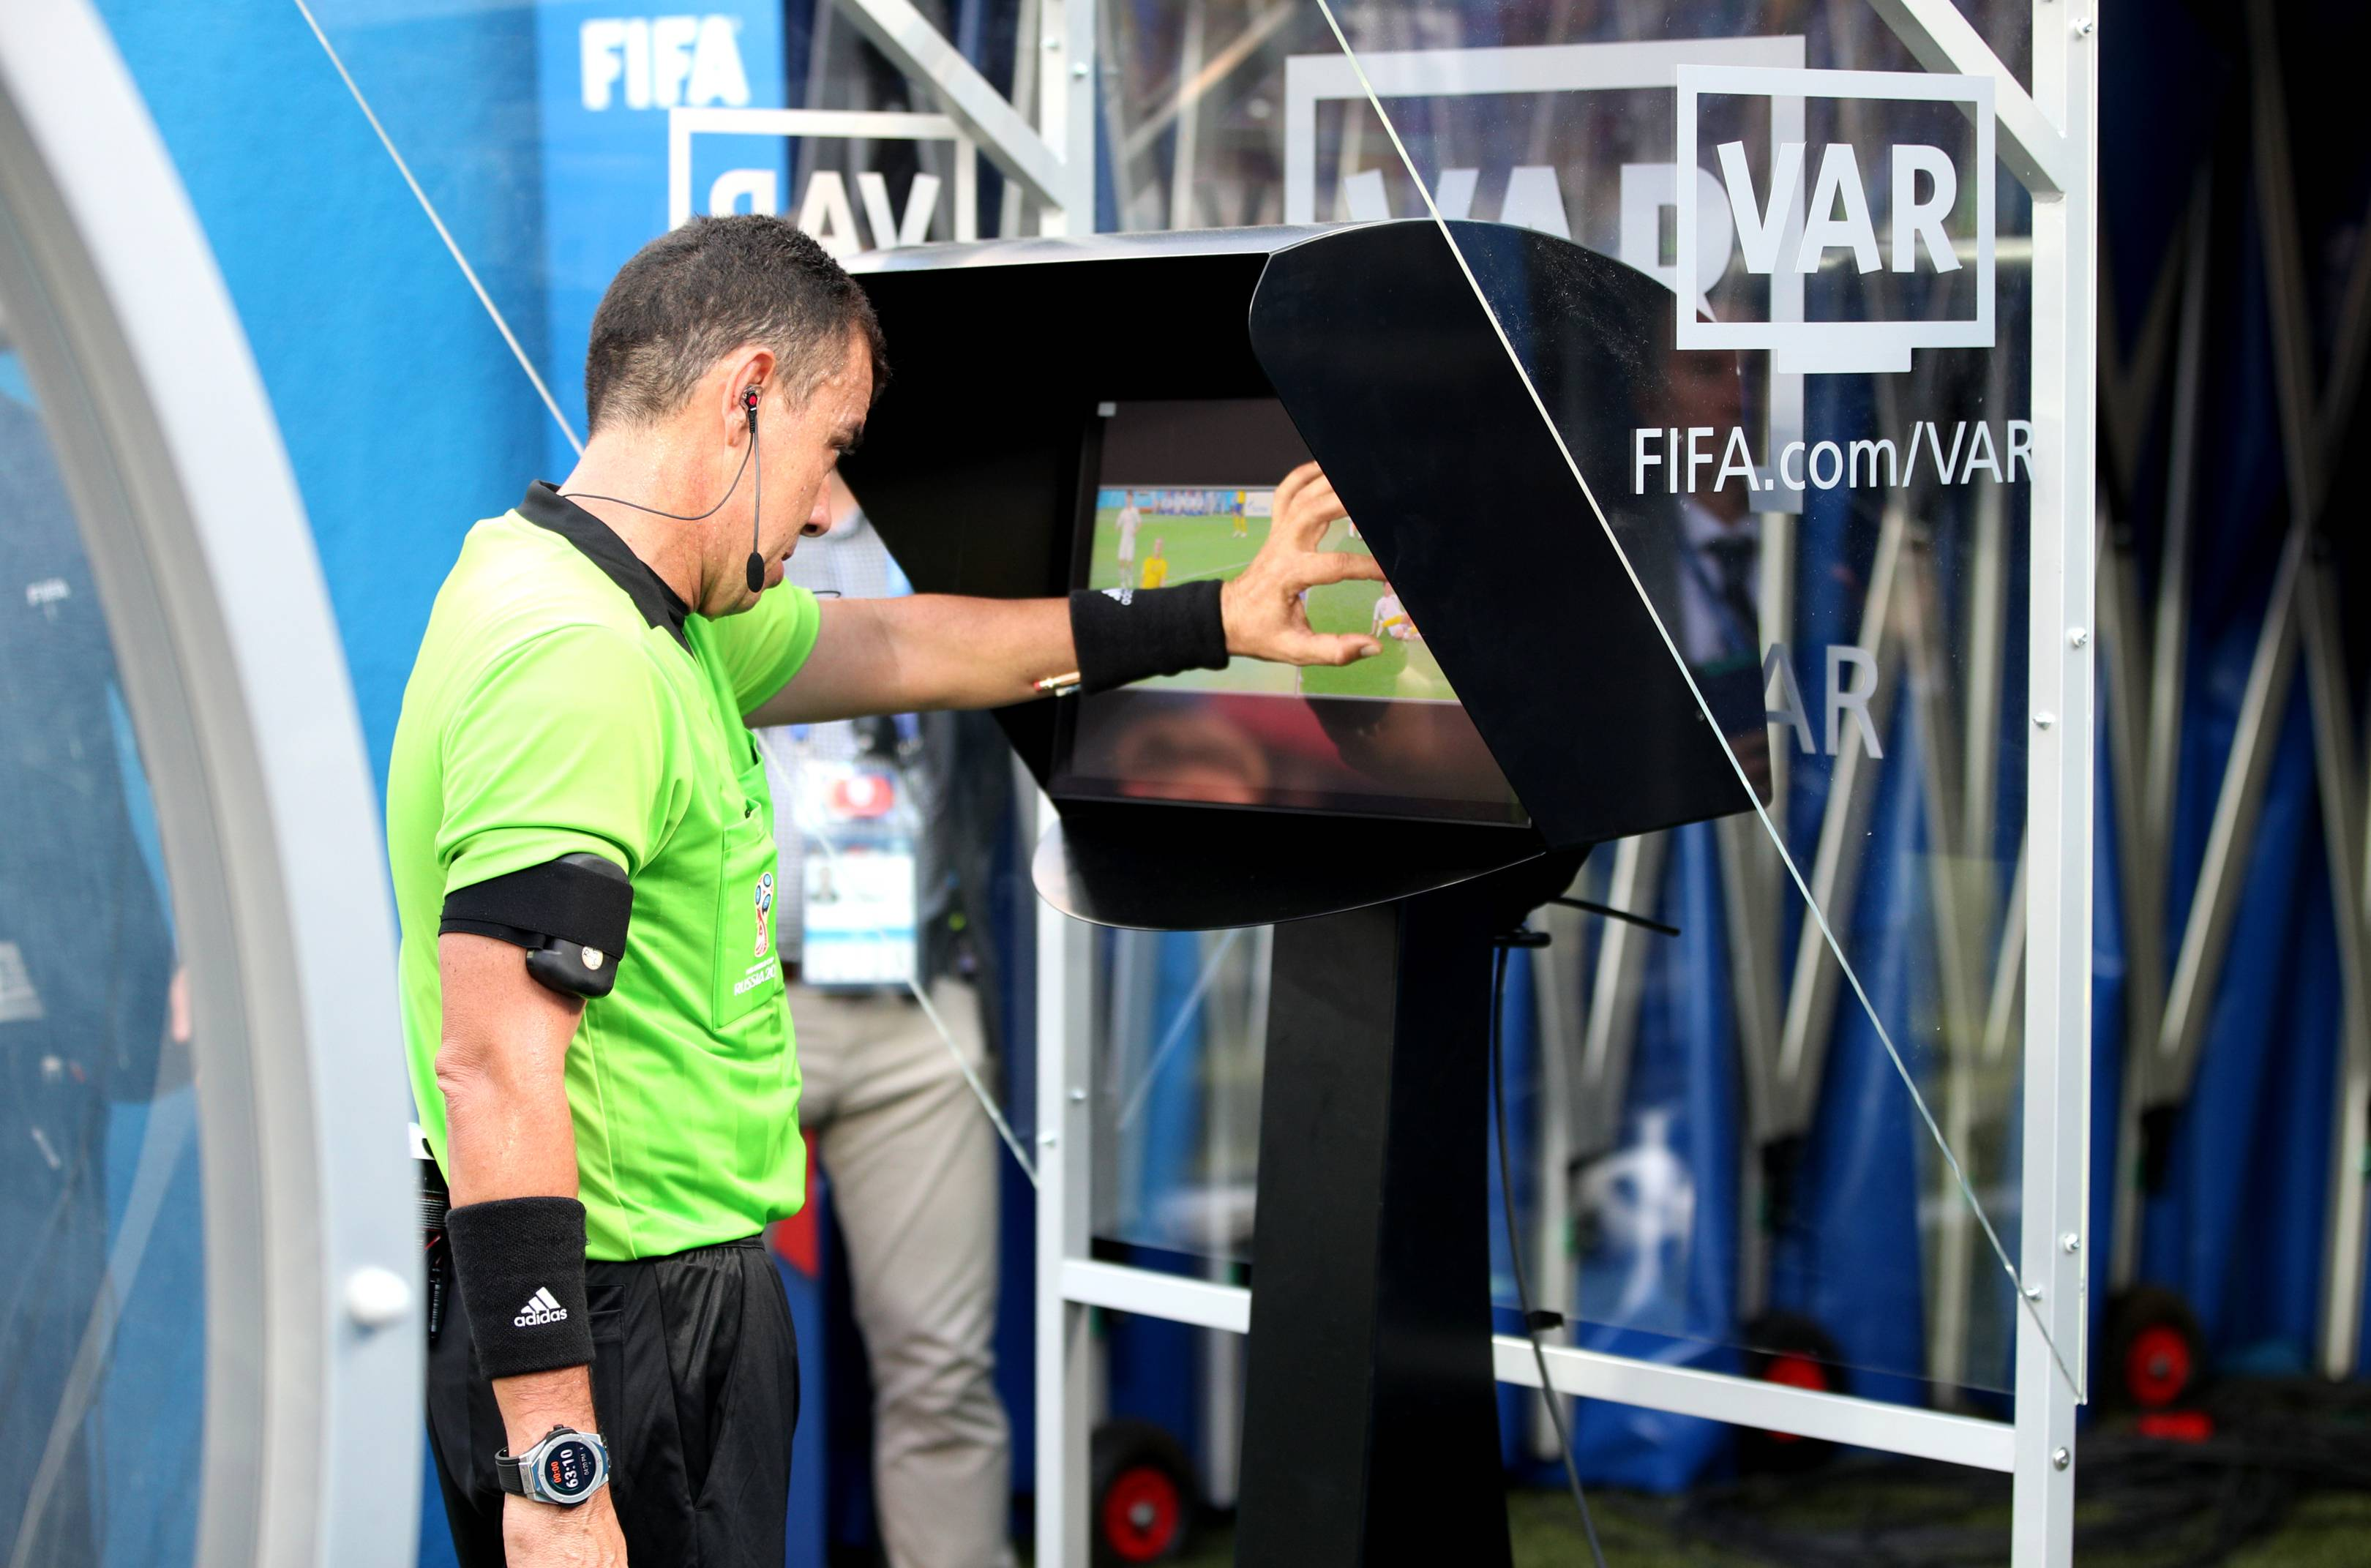 VAR screen being used at the 2018 World Cup